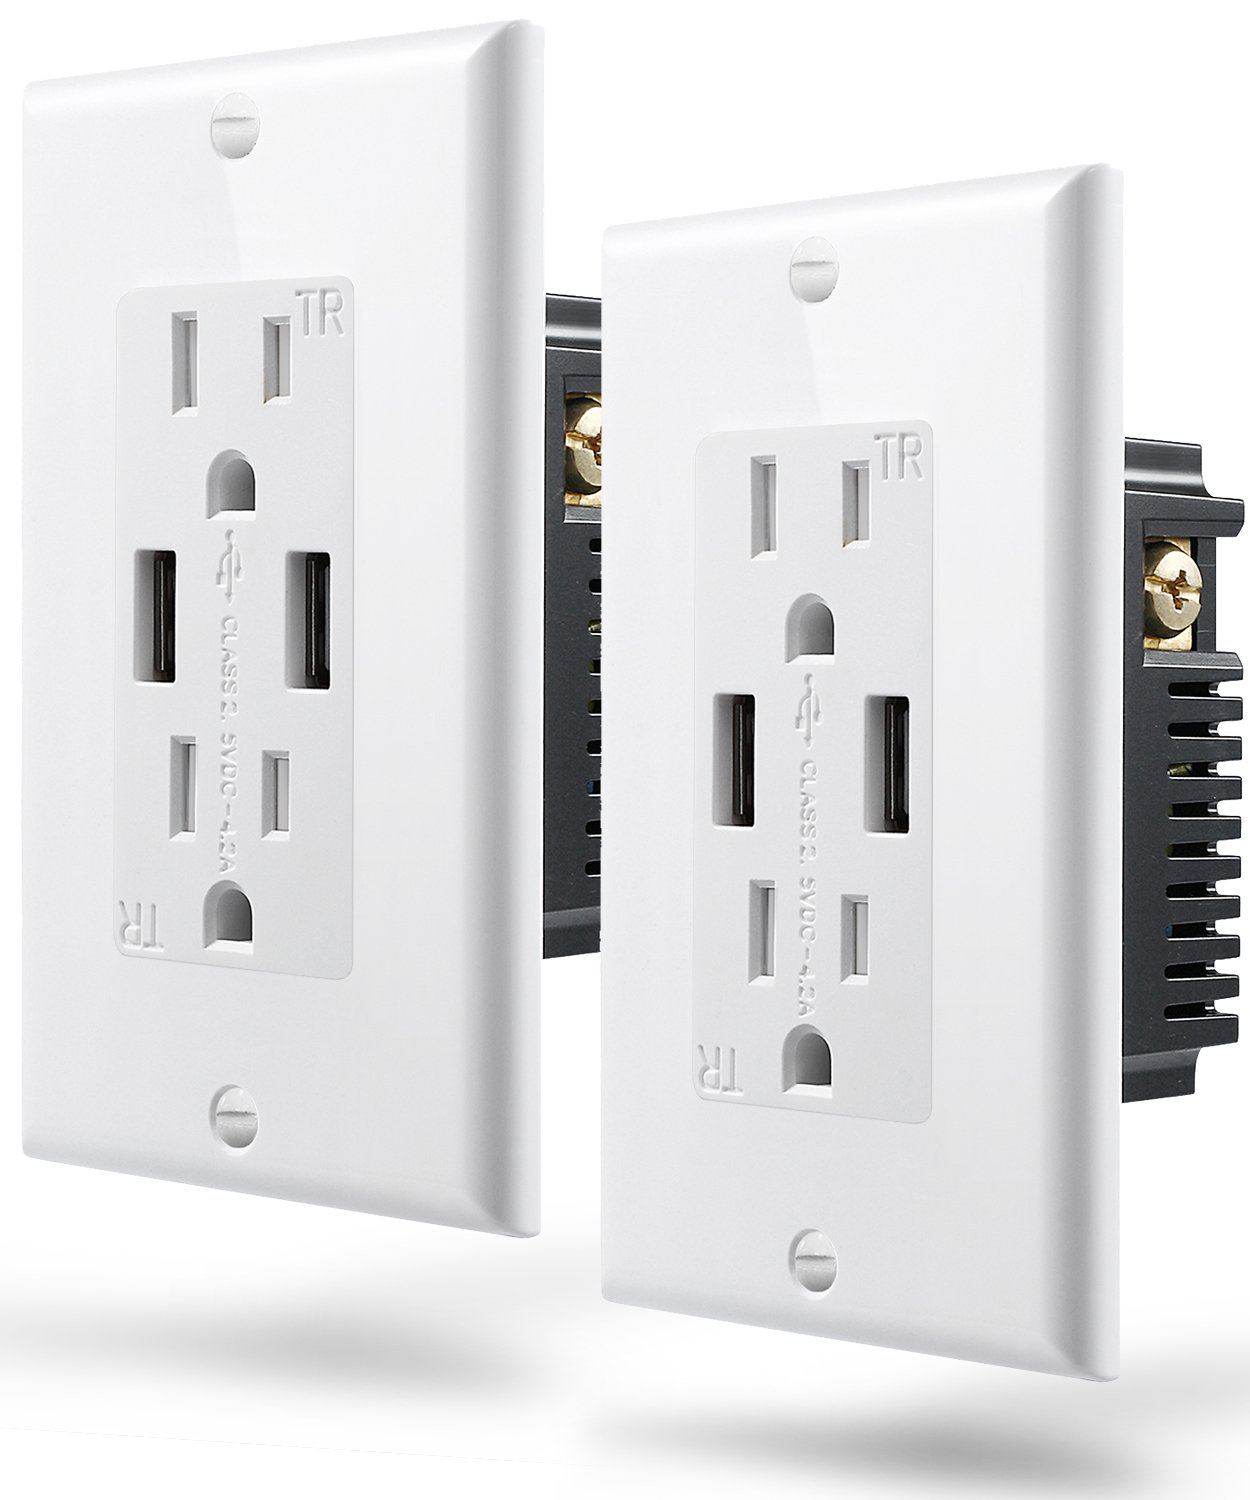 Fosmon Wall Outlet with USB Ports (2 PACK), High Speed 4.2A Dual USB Outlet Charger, 15A 125V Tamper Resistant Outlet Duplex Receptacle Wall Plate, 60Hz 1875 Watts [ETL Listed]